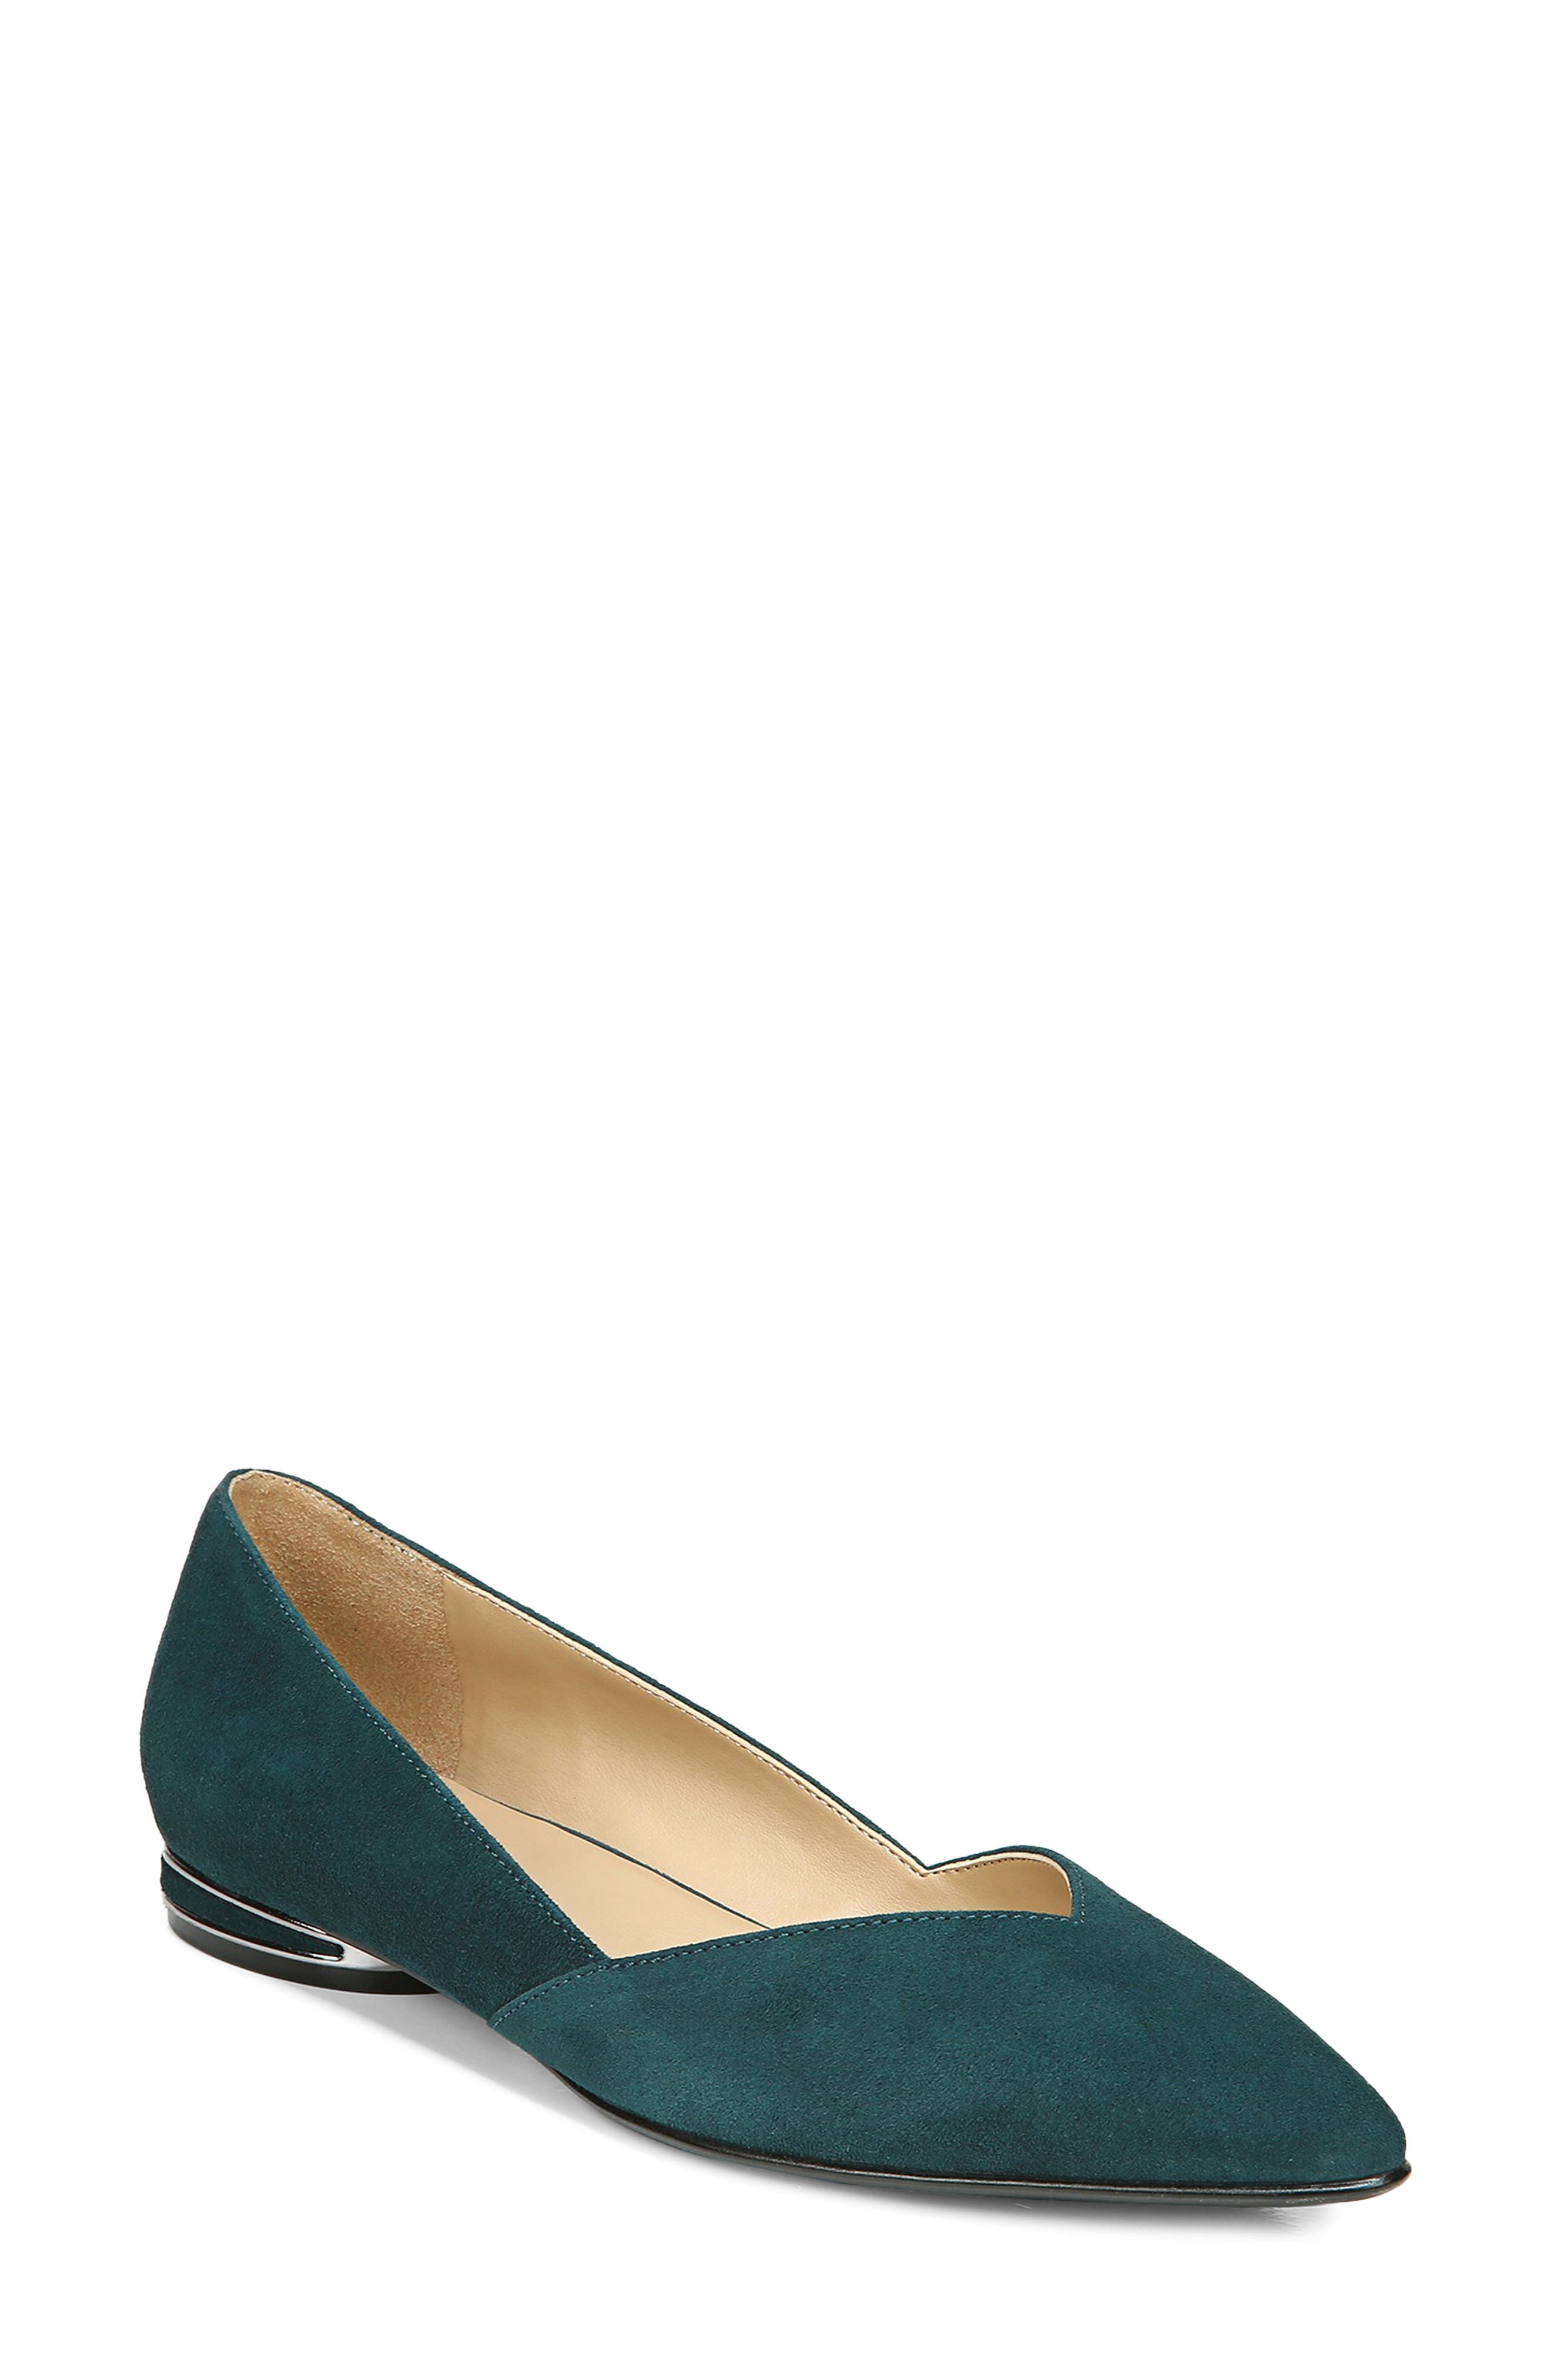 Women's Pointed Toe Flats | Nordstrom